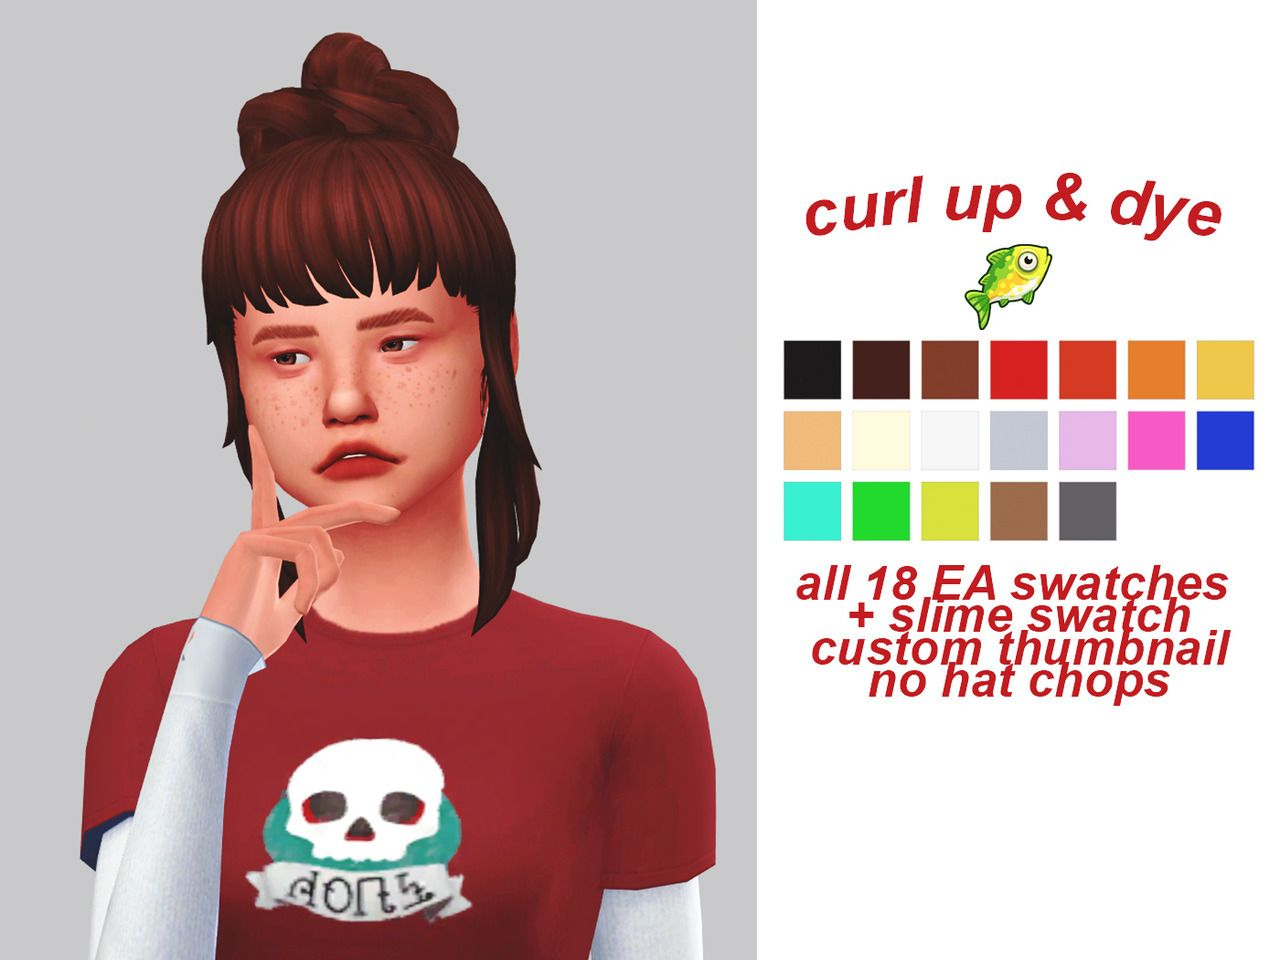 Lana CC Finds - (gloomfish) curl up & dye | Sims4 | Sims